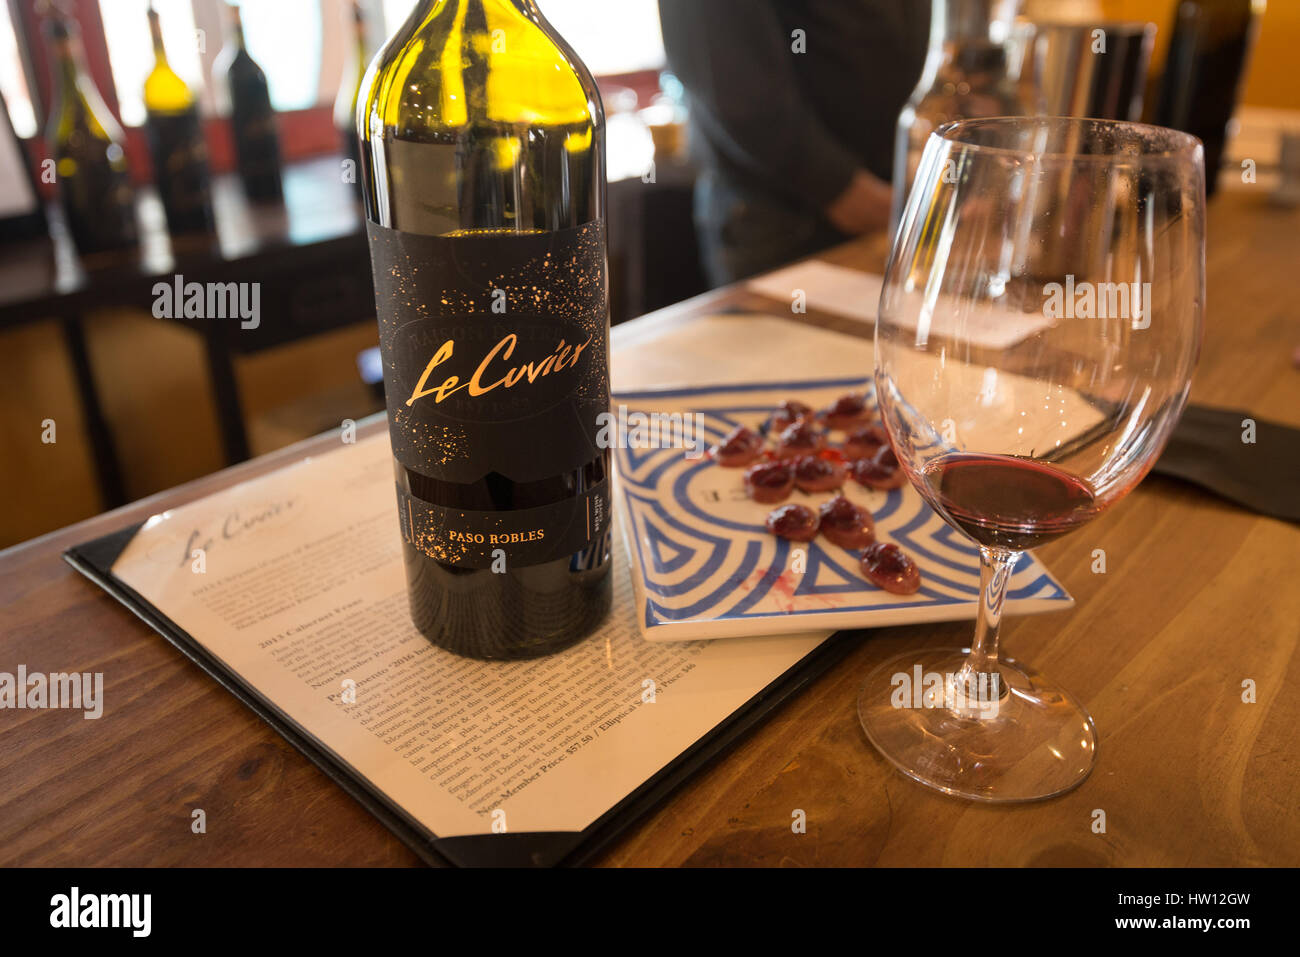 Le Cuvier Winery located in Paso Robles, California known for it's spacious tasting room for wine tasting. - Stock Image